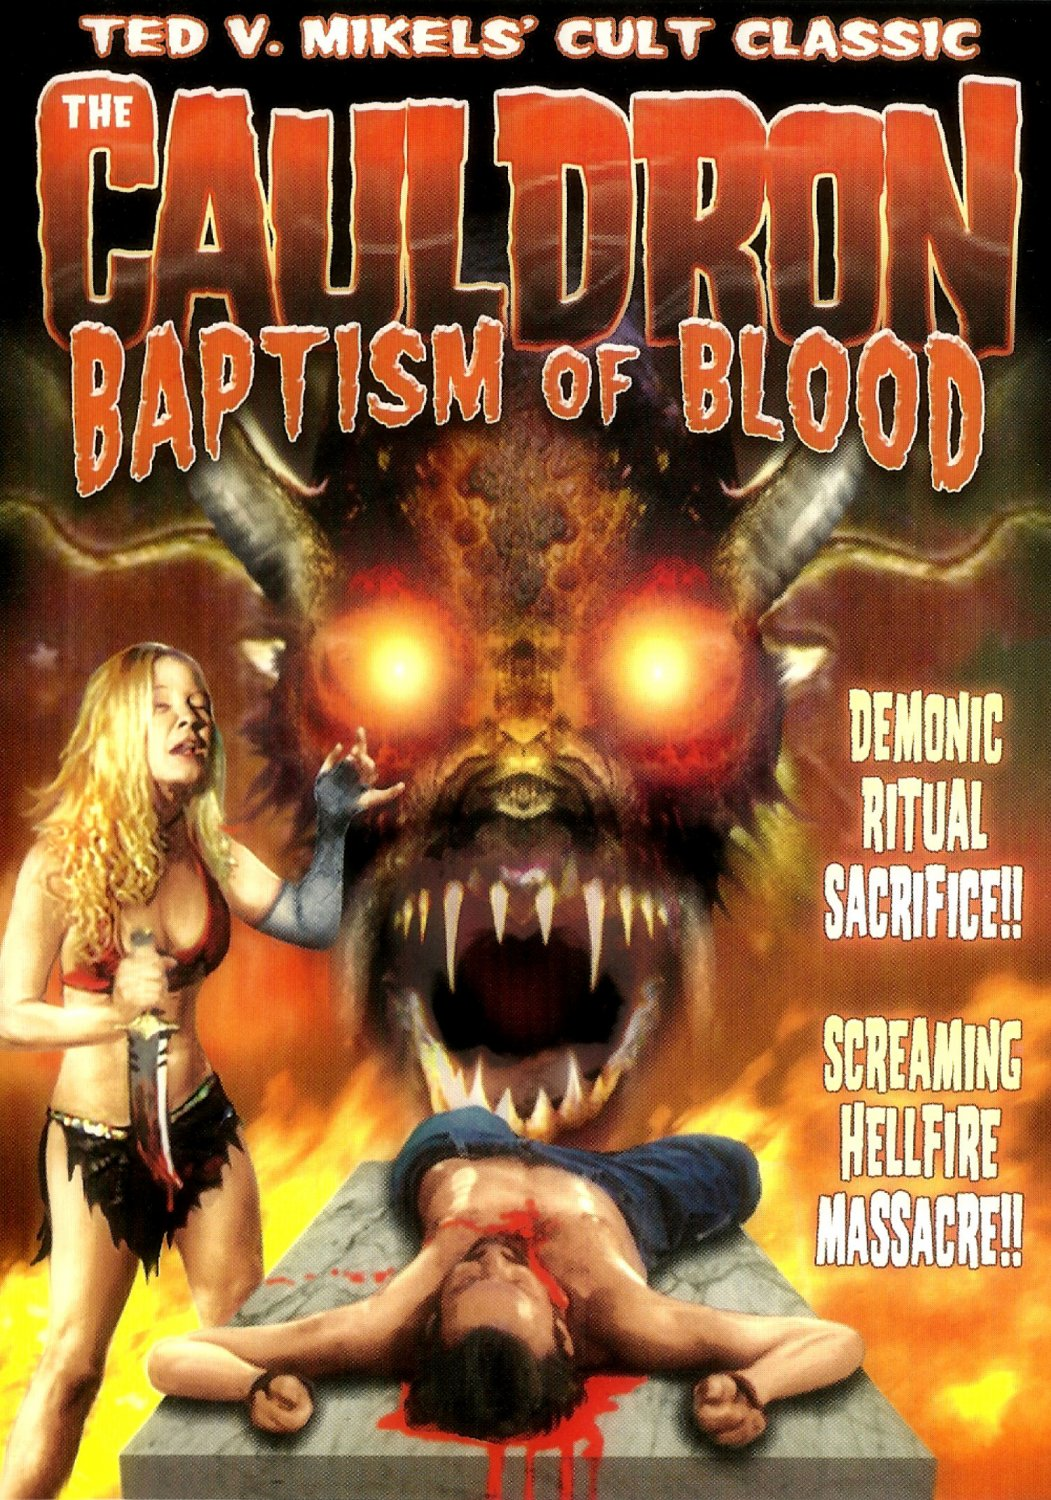 Cauldron: Baptism of Blood (USB) Flash Drive